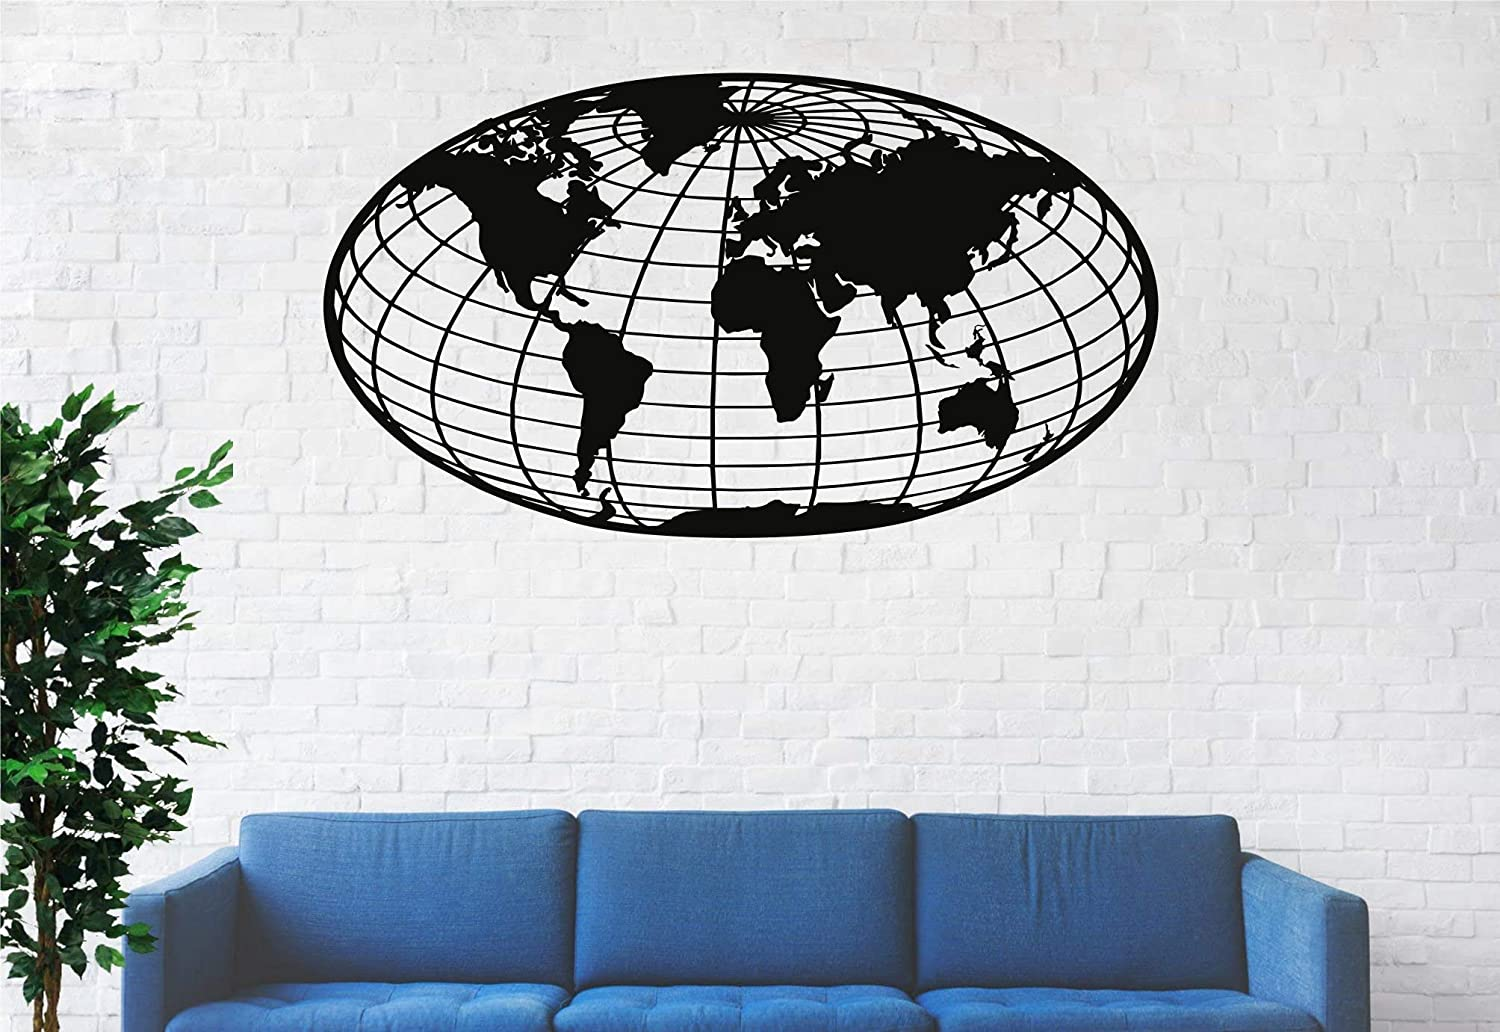 Metal World Map Wall Art Compass World Map Without Borders Metal Wall Decor